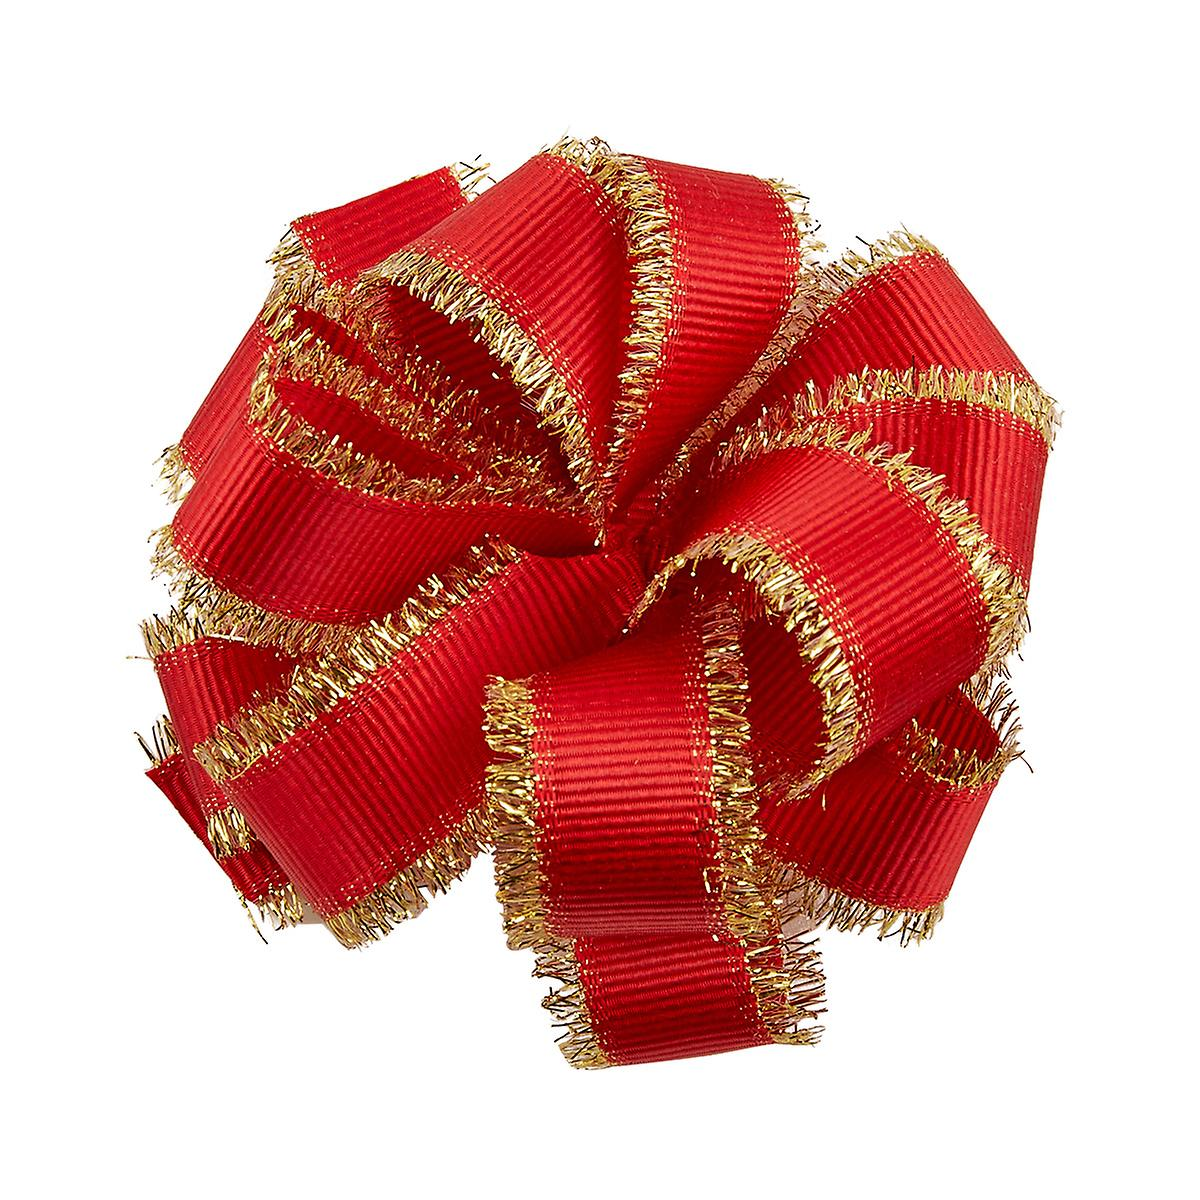 Papyrus Red Pom Pom Bow with Gold Fringe